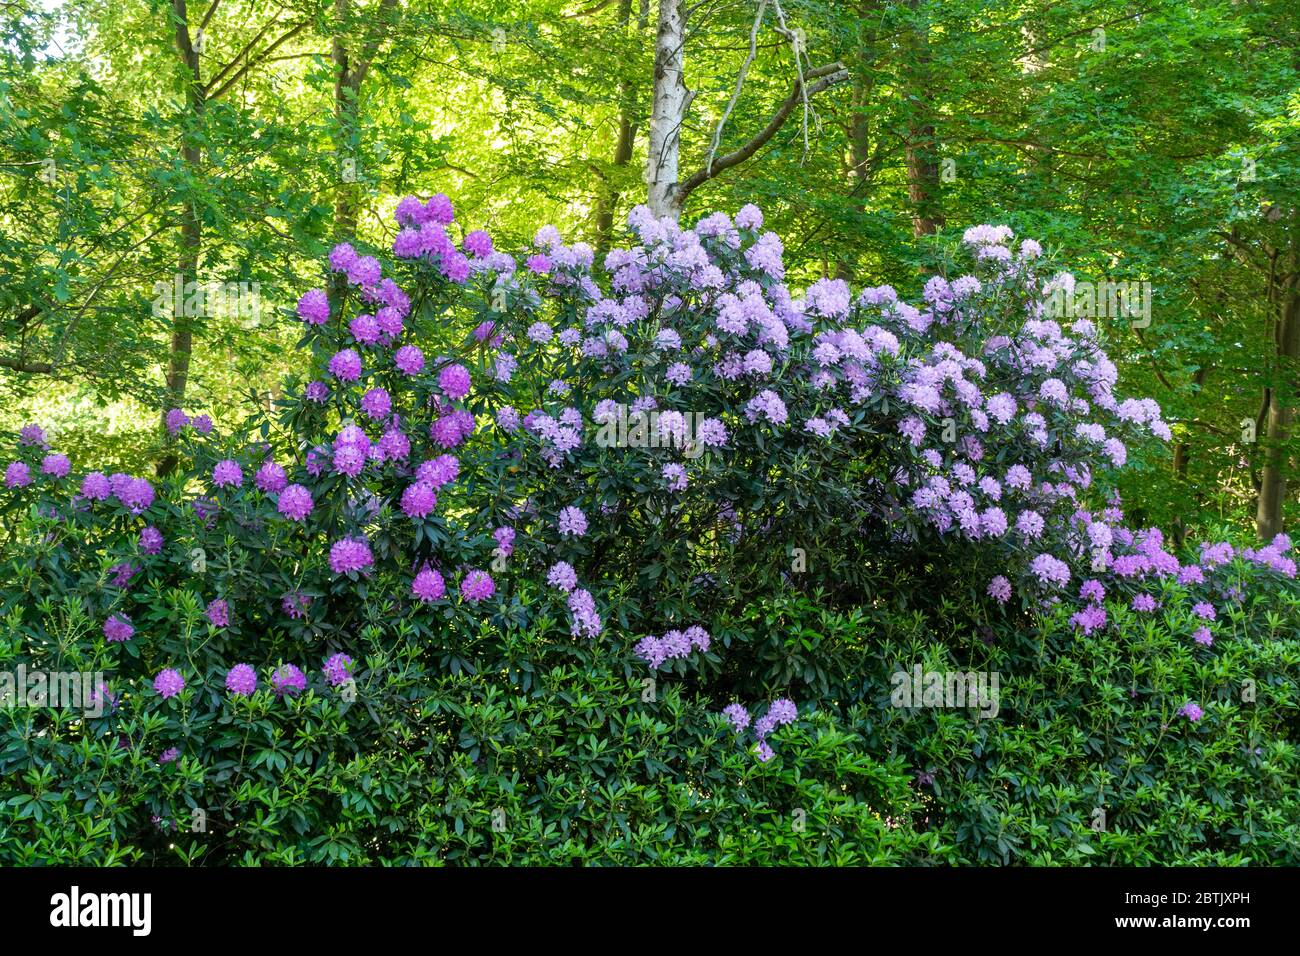 common-rhododendrons-rhododendron-ponticum-in-flower-by-the-road-in-fleet-hampshire-uk-rhododendrons-are-a-non-native-invasive-plant-in-the-uk-2BTJXPH.jpg